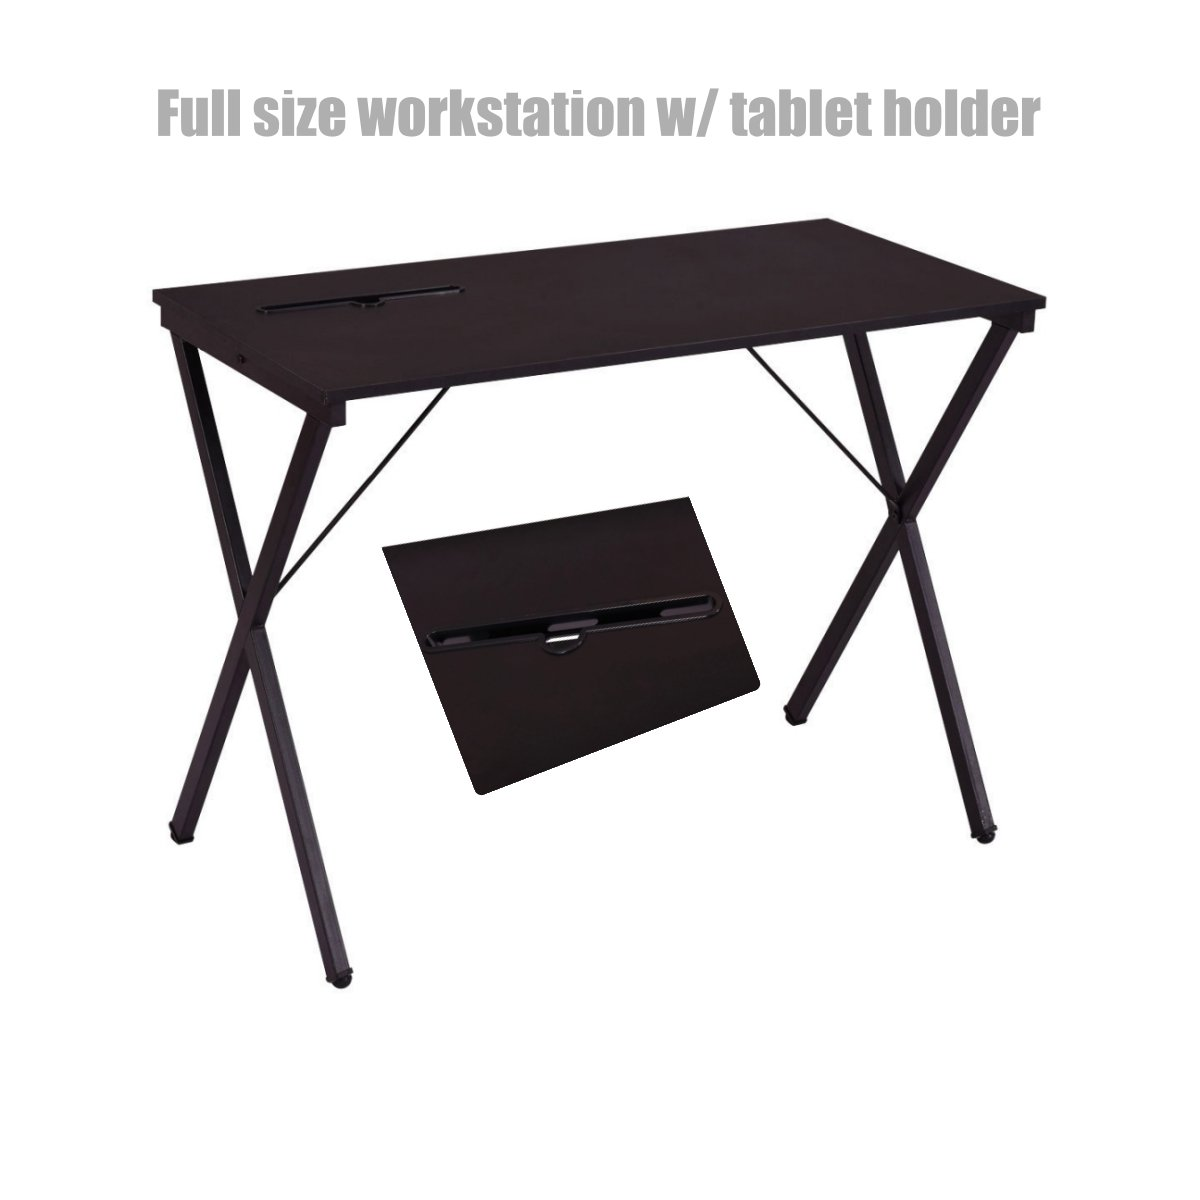 Modern design laptop computer desk space saving solid powder coated steel frame durable workstation folding table home decor office furniture classic